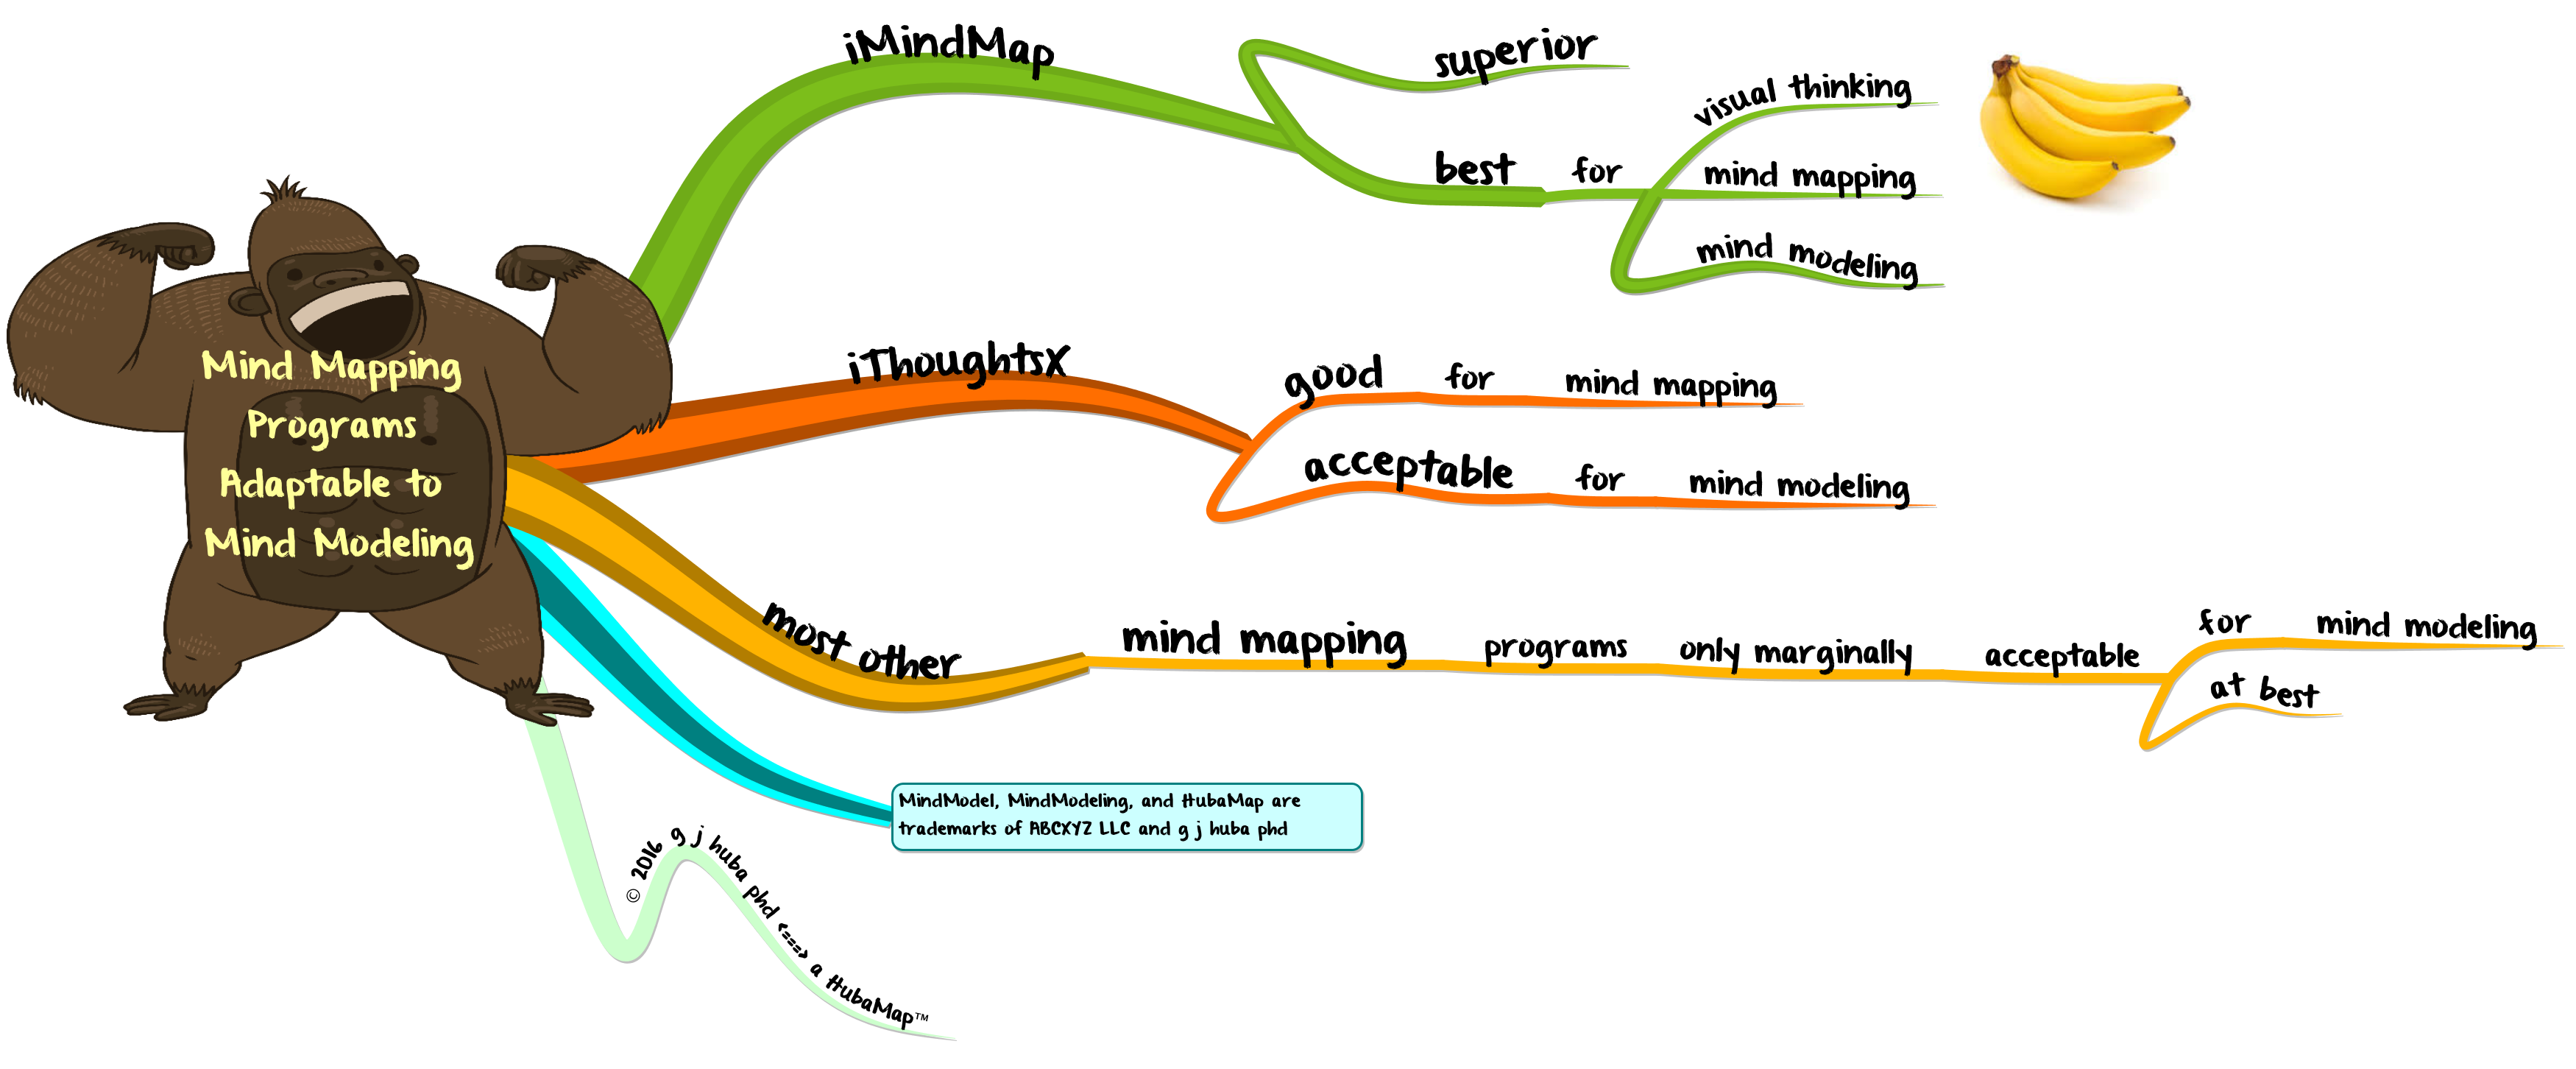 mind mapping programs adaptable to mind modeling